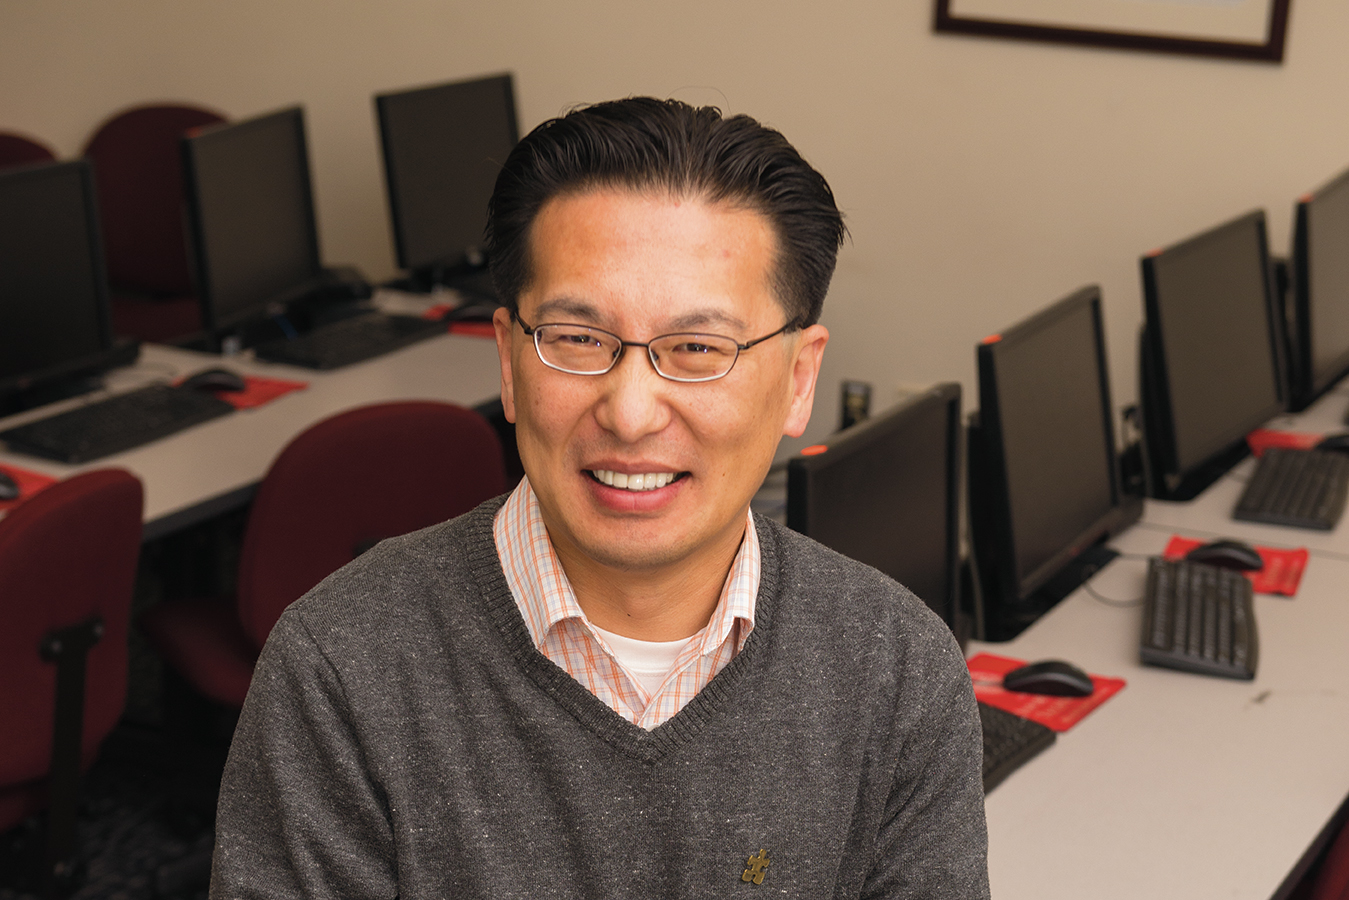 Ronnie Jia, associate professor in the School of Information Technology